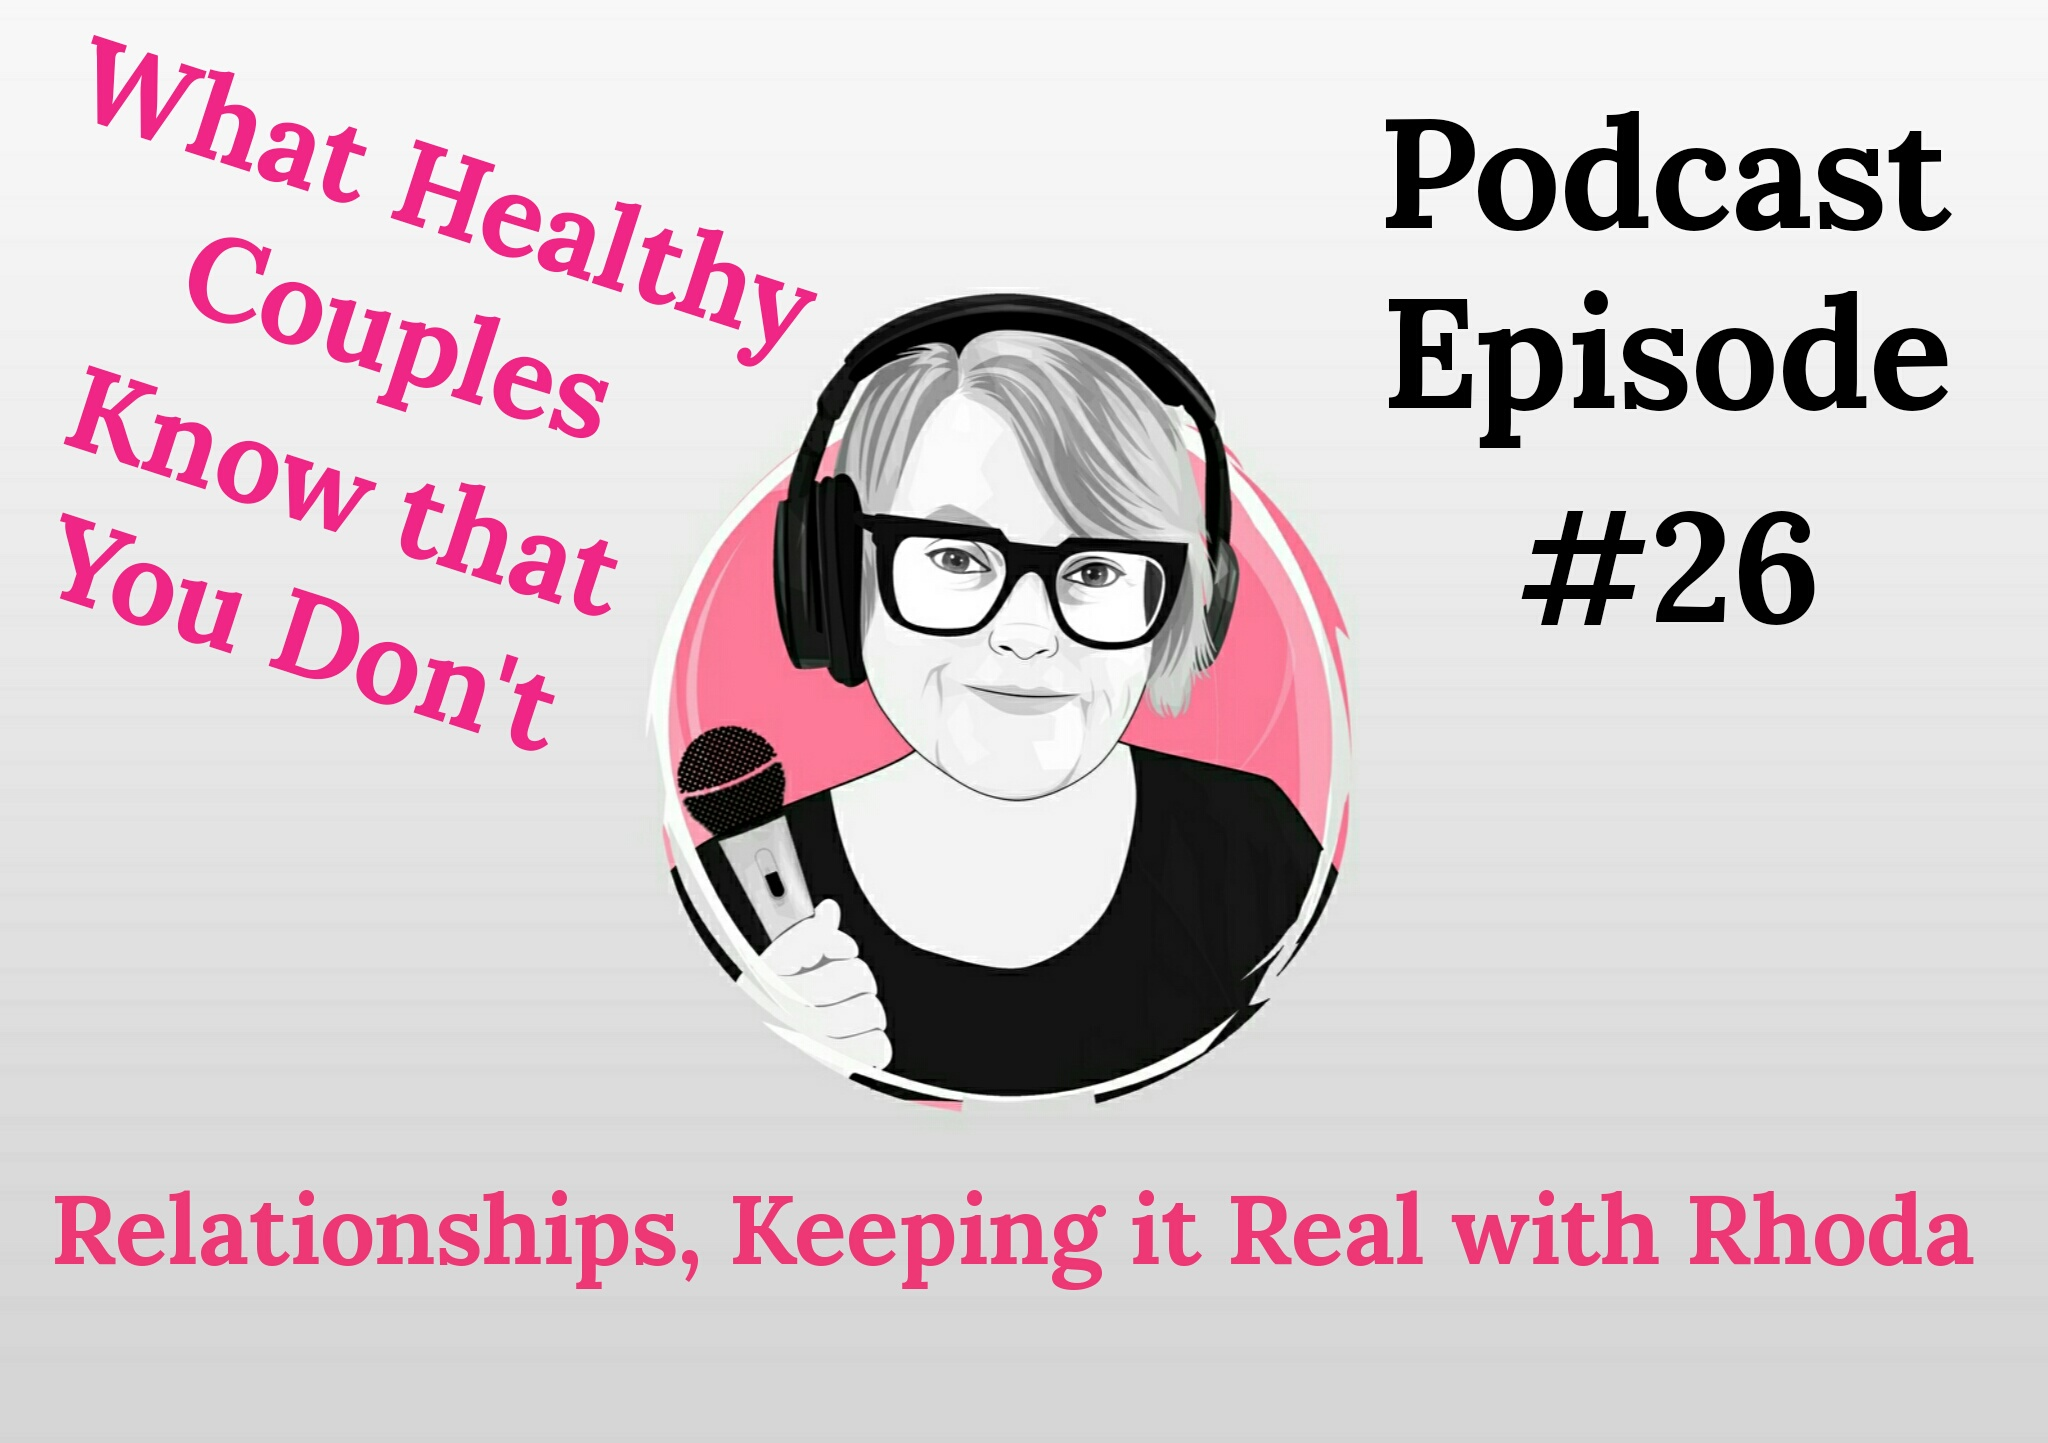 What Healthy Couples Know That You Don't - Relationships, Keeping it Real with Rhoda